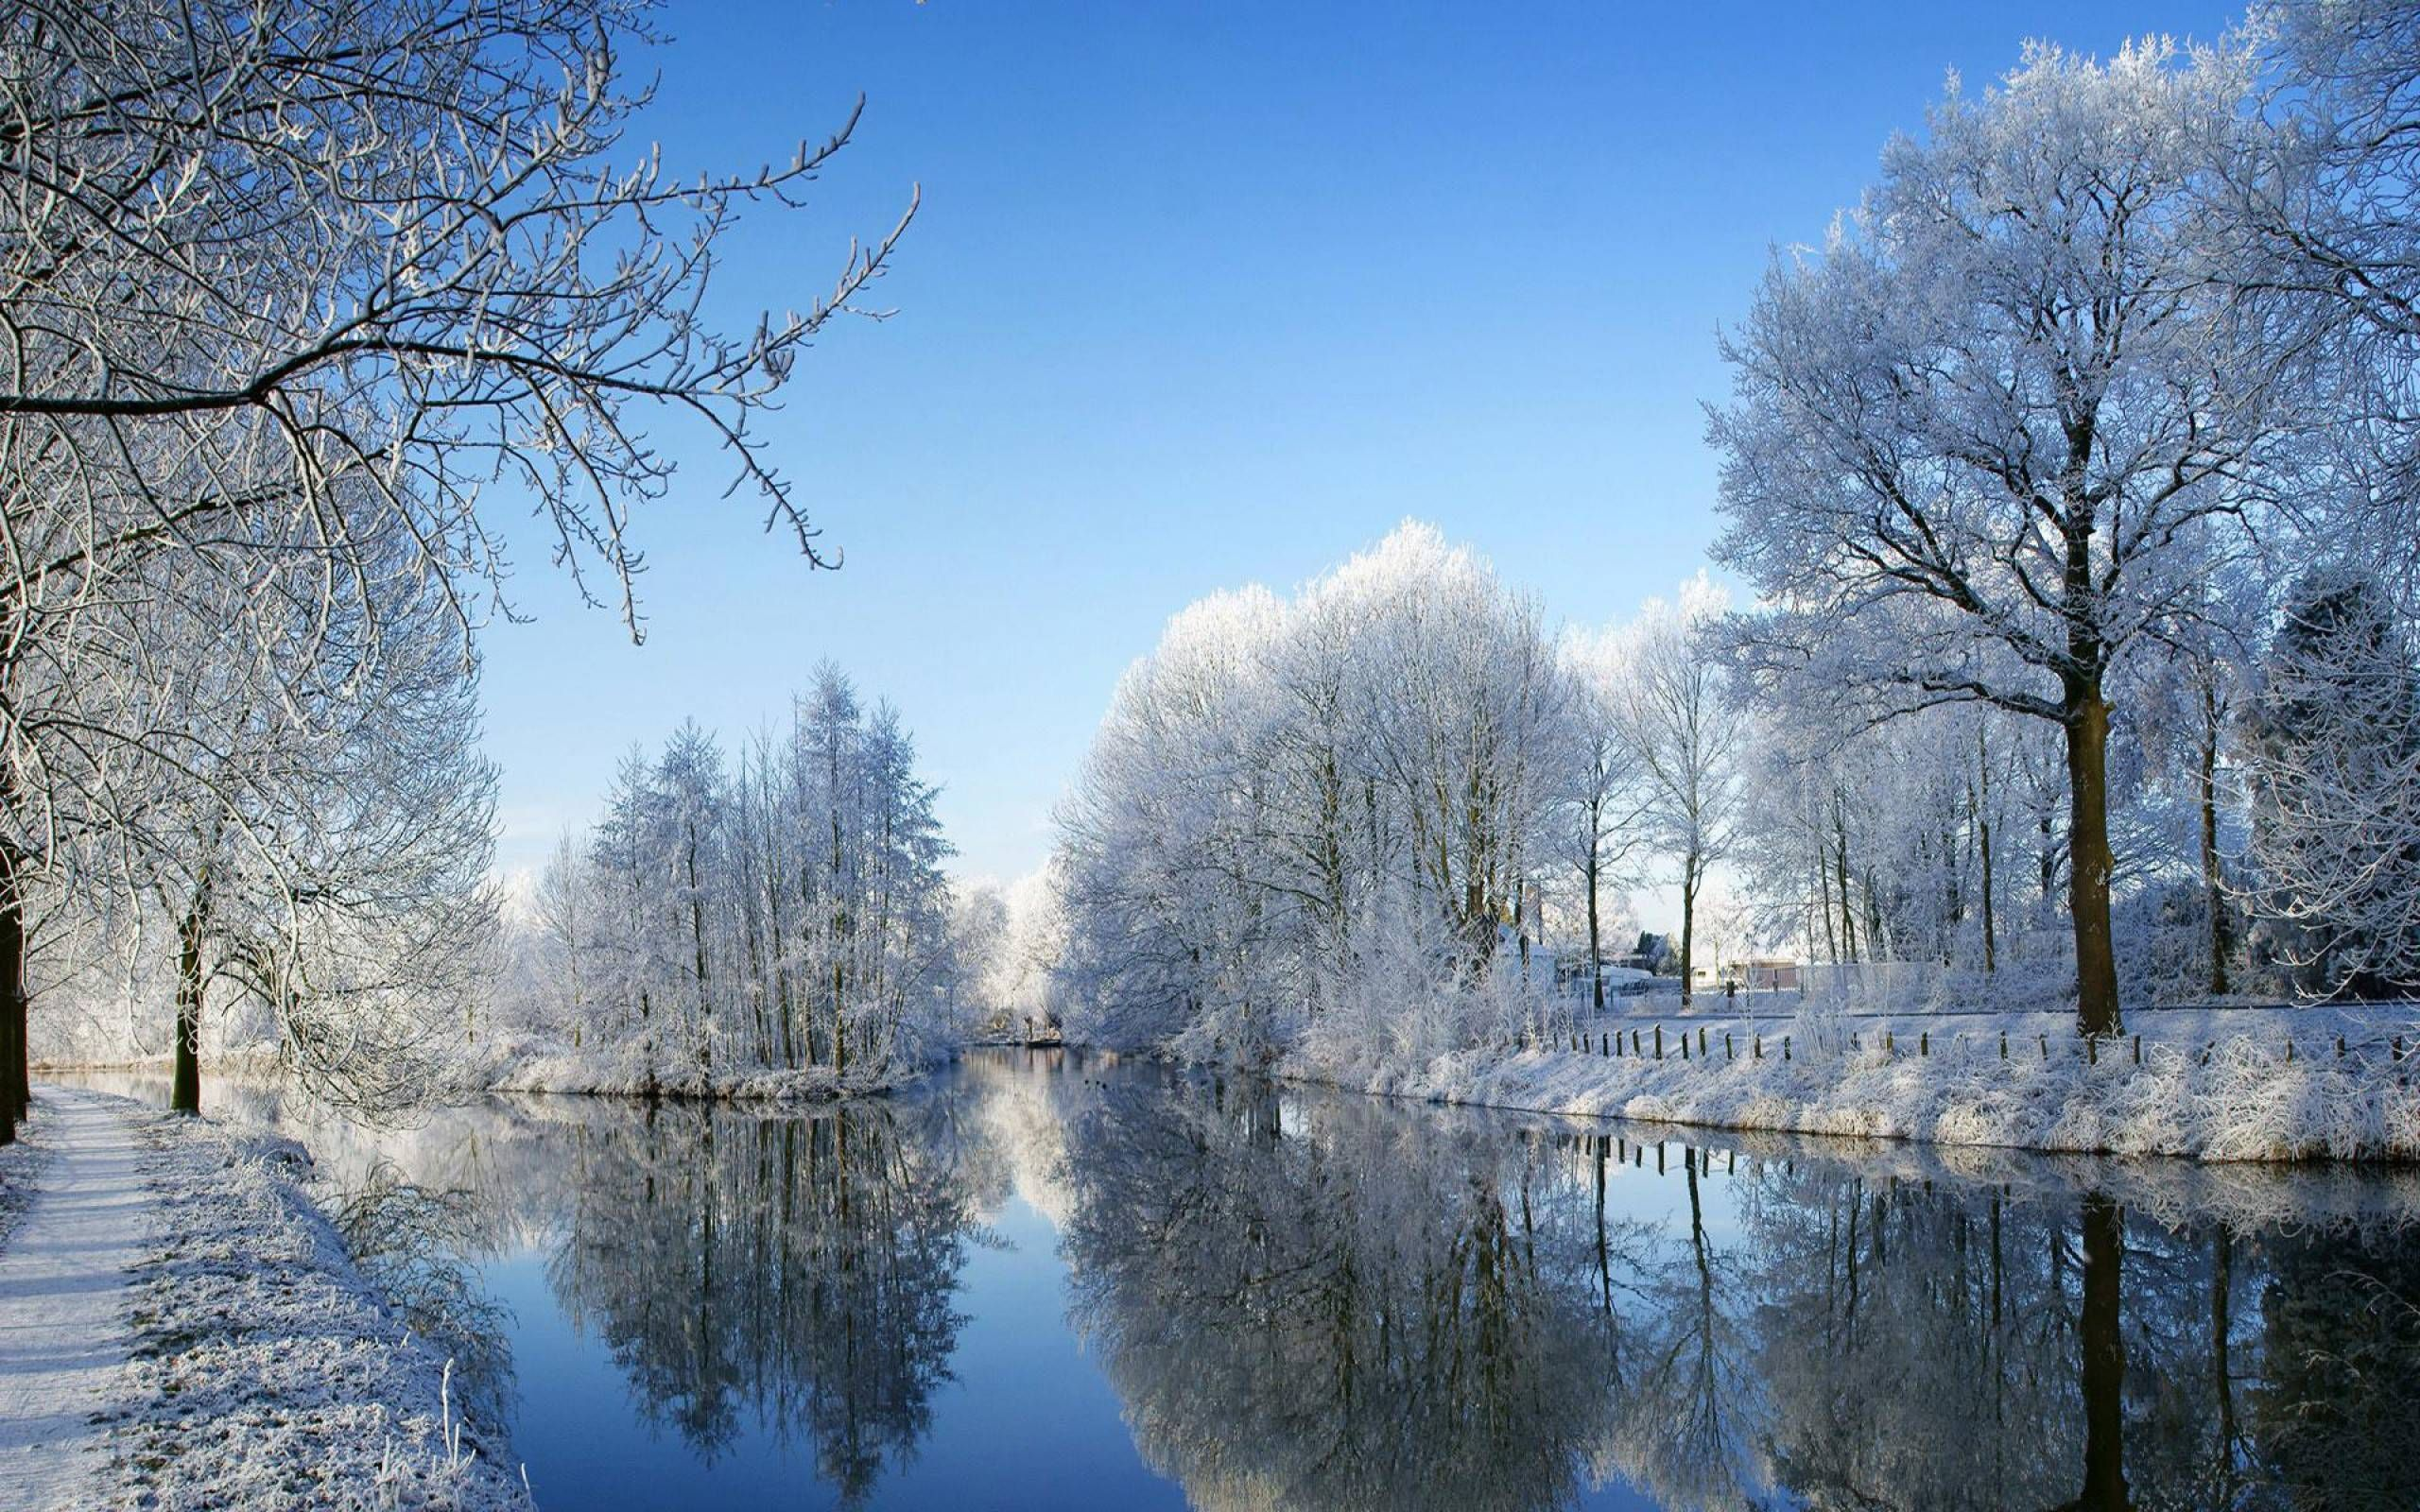 Canadian Winter Sceneries Wallpapers Winter Wallpaper Free Winter Wallpaper Scenery Wallpaper